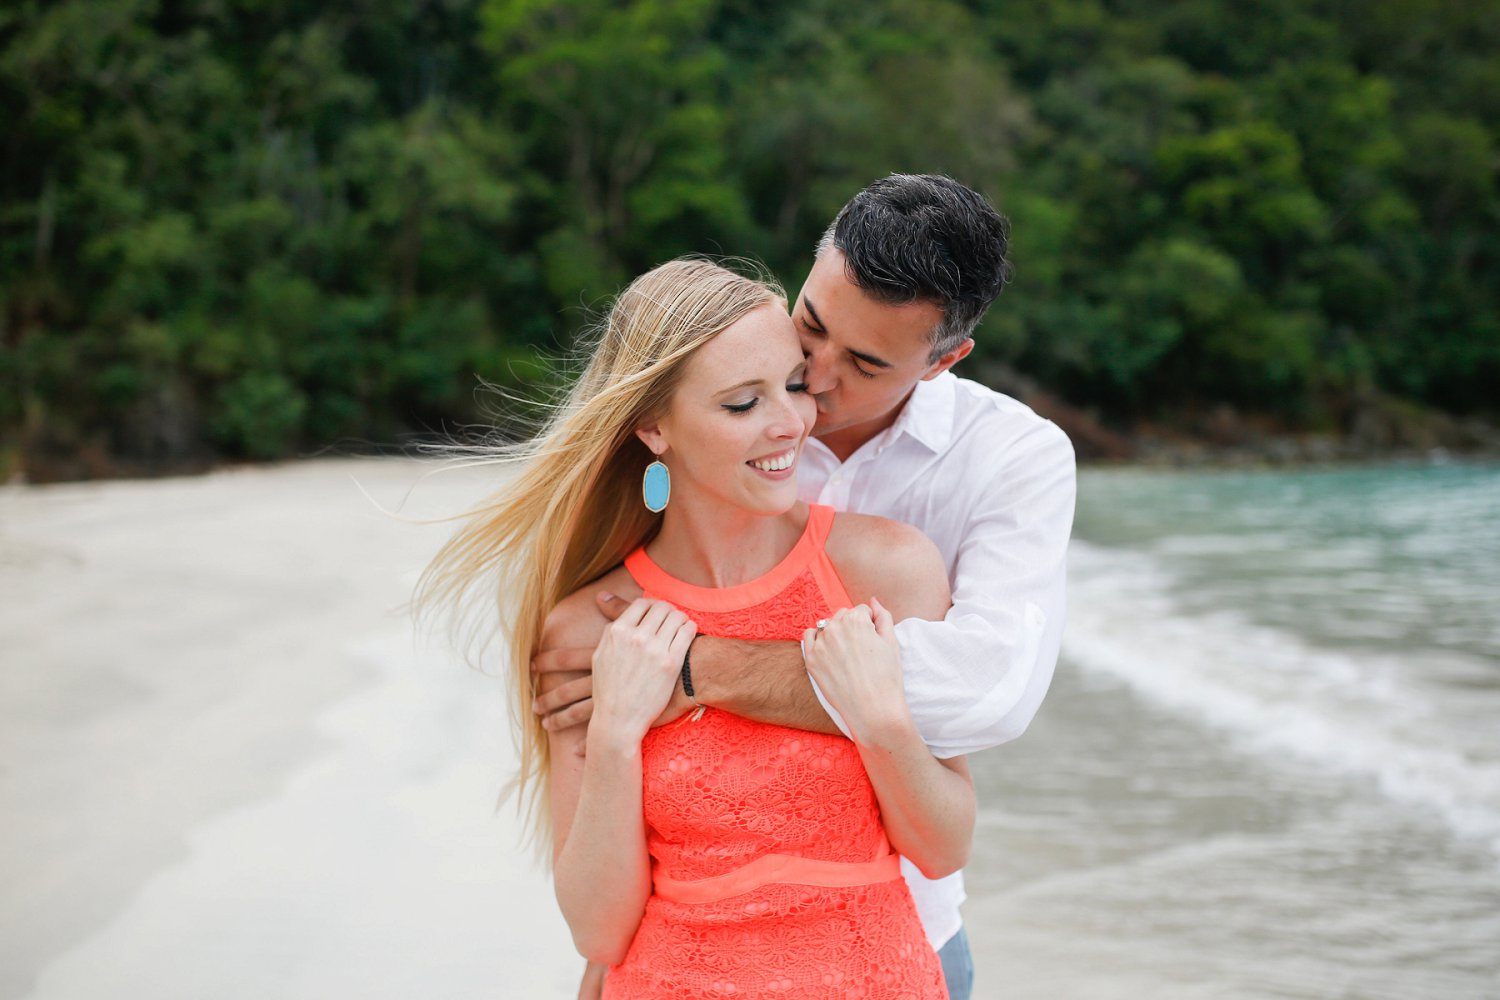 Engagement photography session at Magens Bay Beach planned by Blue Sky Ceremony.